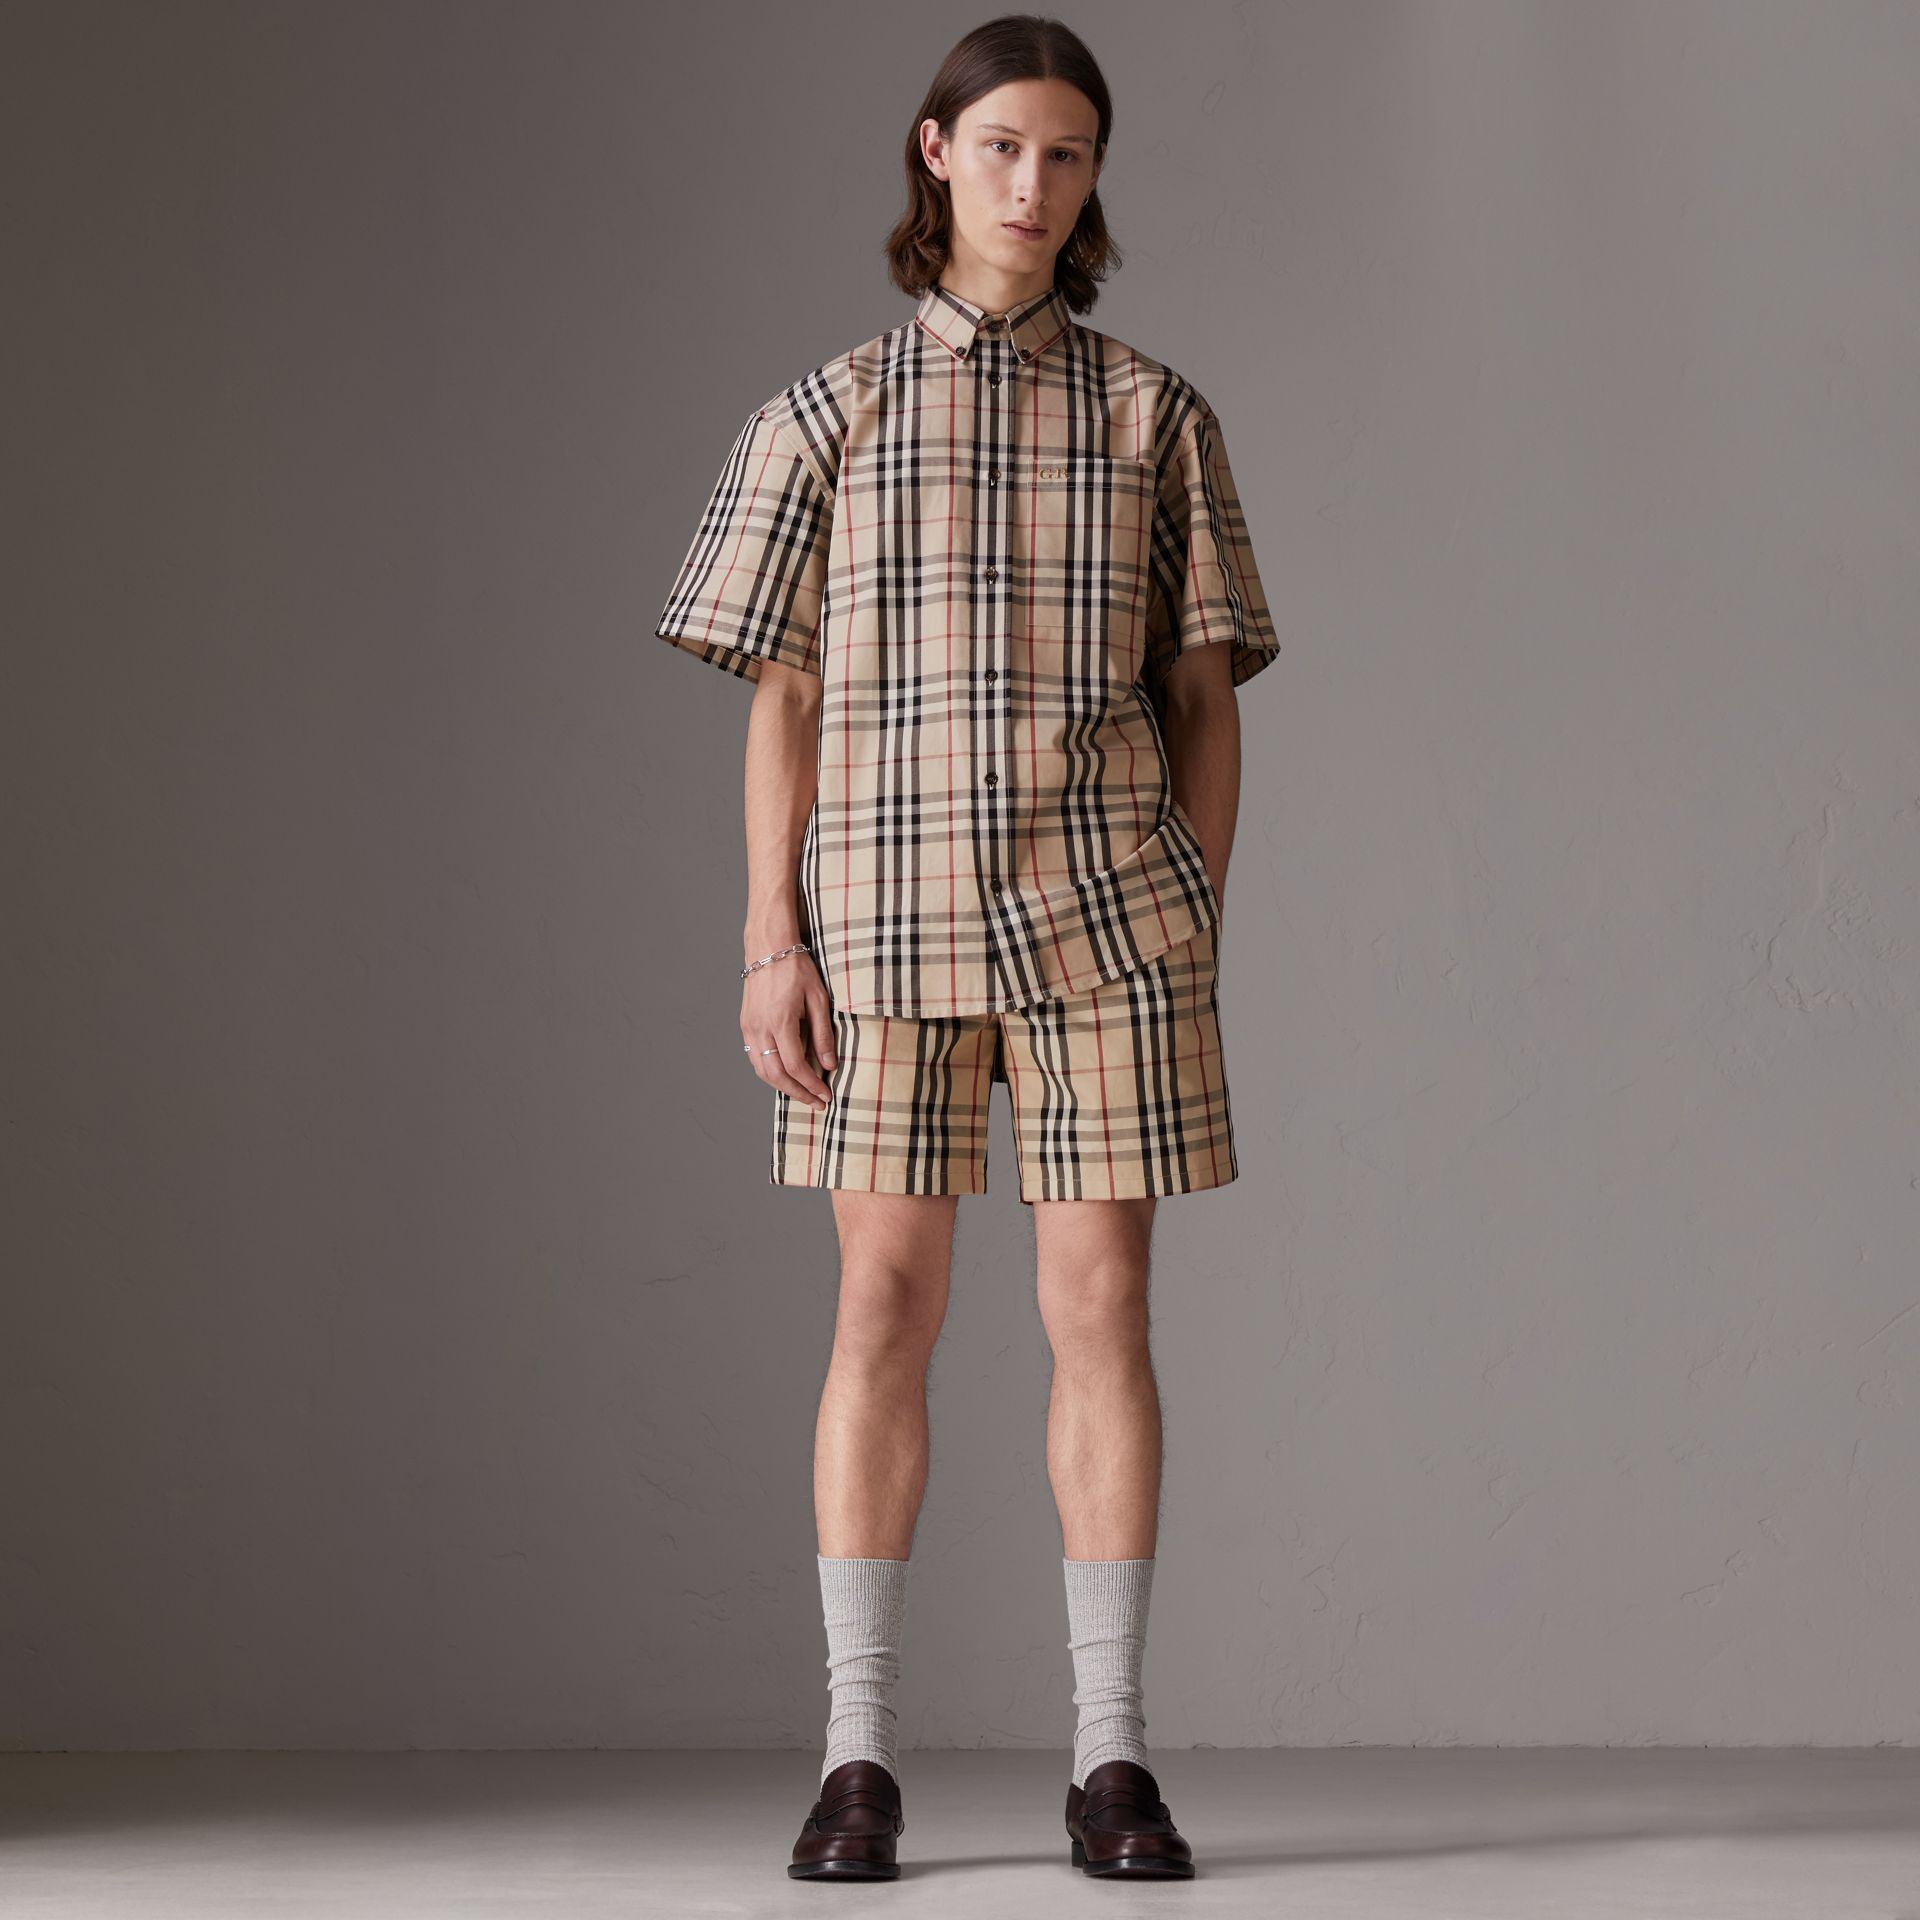 Gosha x Burberry Short-sleeve Check Shirt in Honey | Burberry Australia - gallery image 2